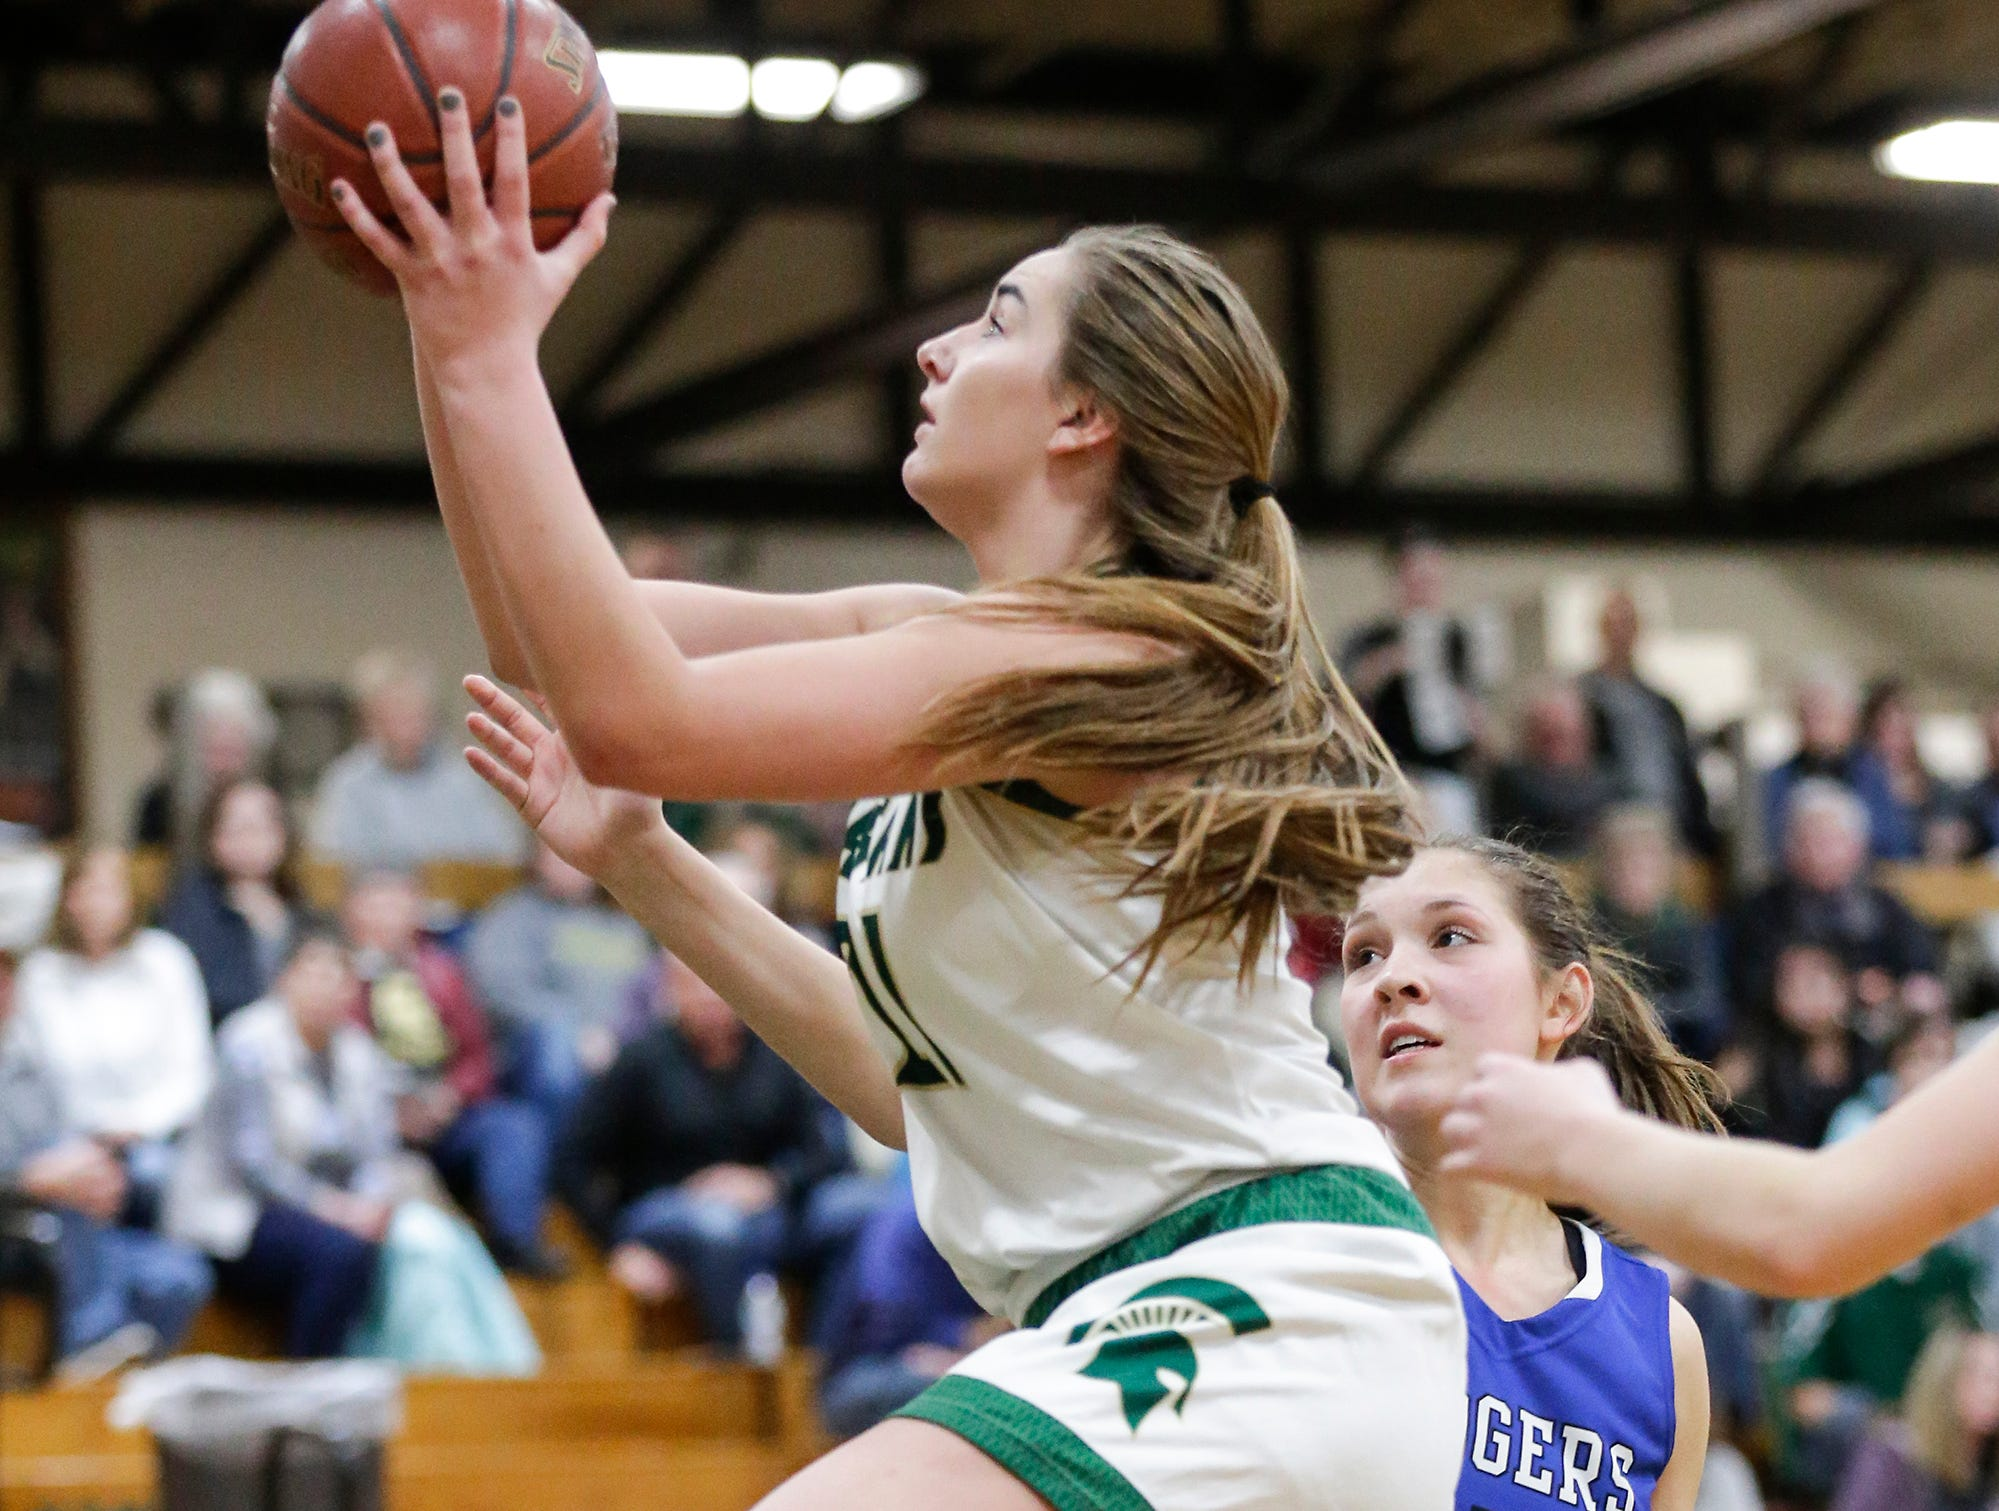 Laconia High School girls basketball's Alissa Dins goes up for a basket against St. Mary's Springs Academy Tuesday, January 15, 2019 during their game in Rosendale. Laconia won the game 57-45. Doug Raflik/USA TODAY NETWORK-Wisconsin